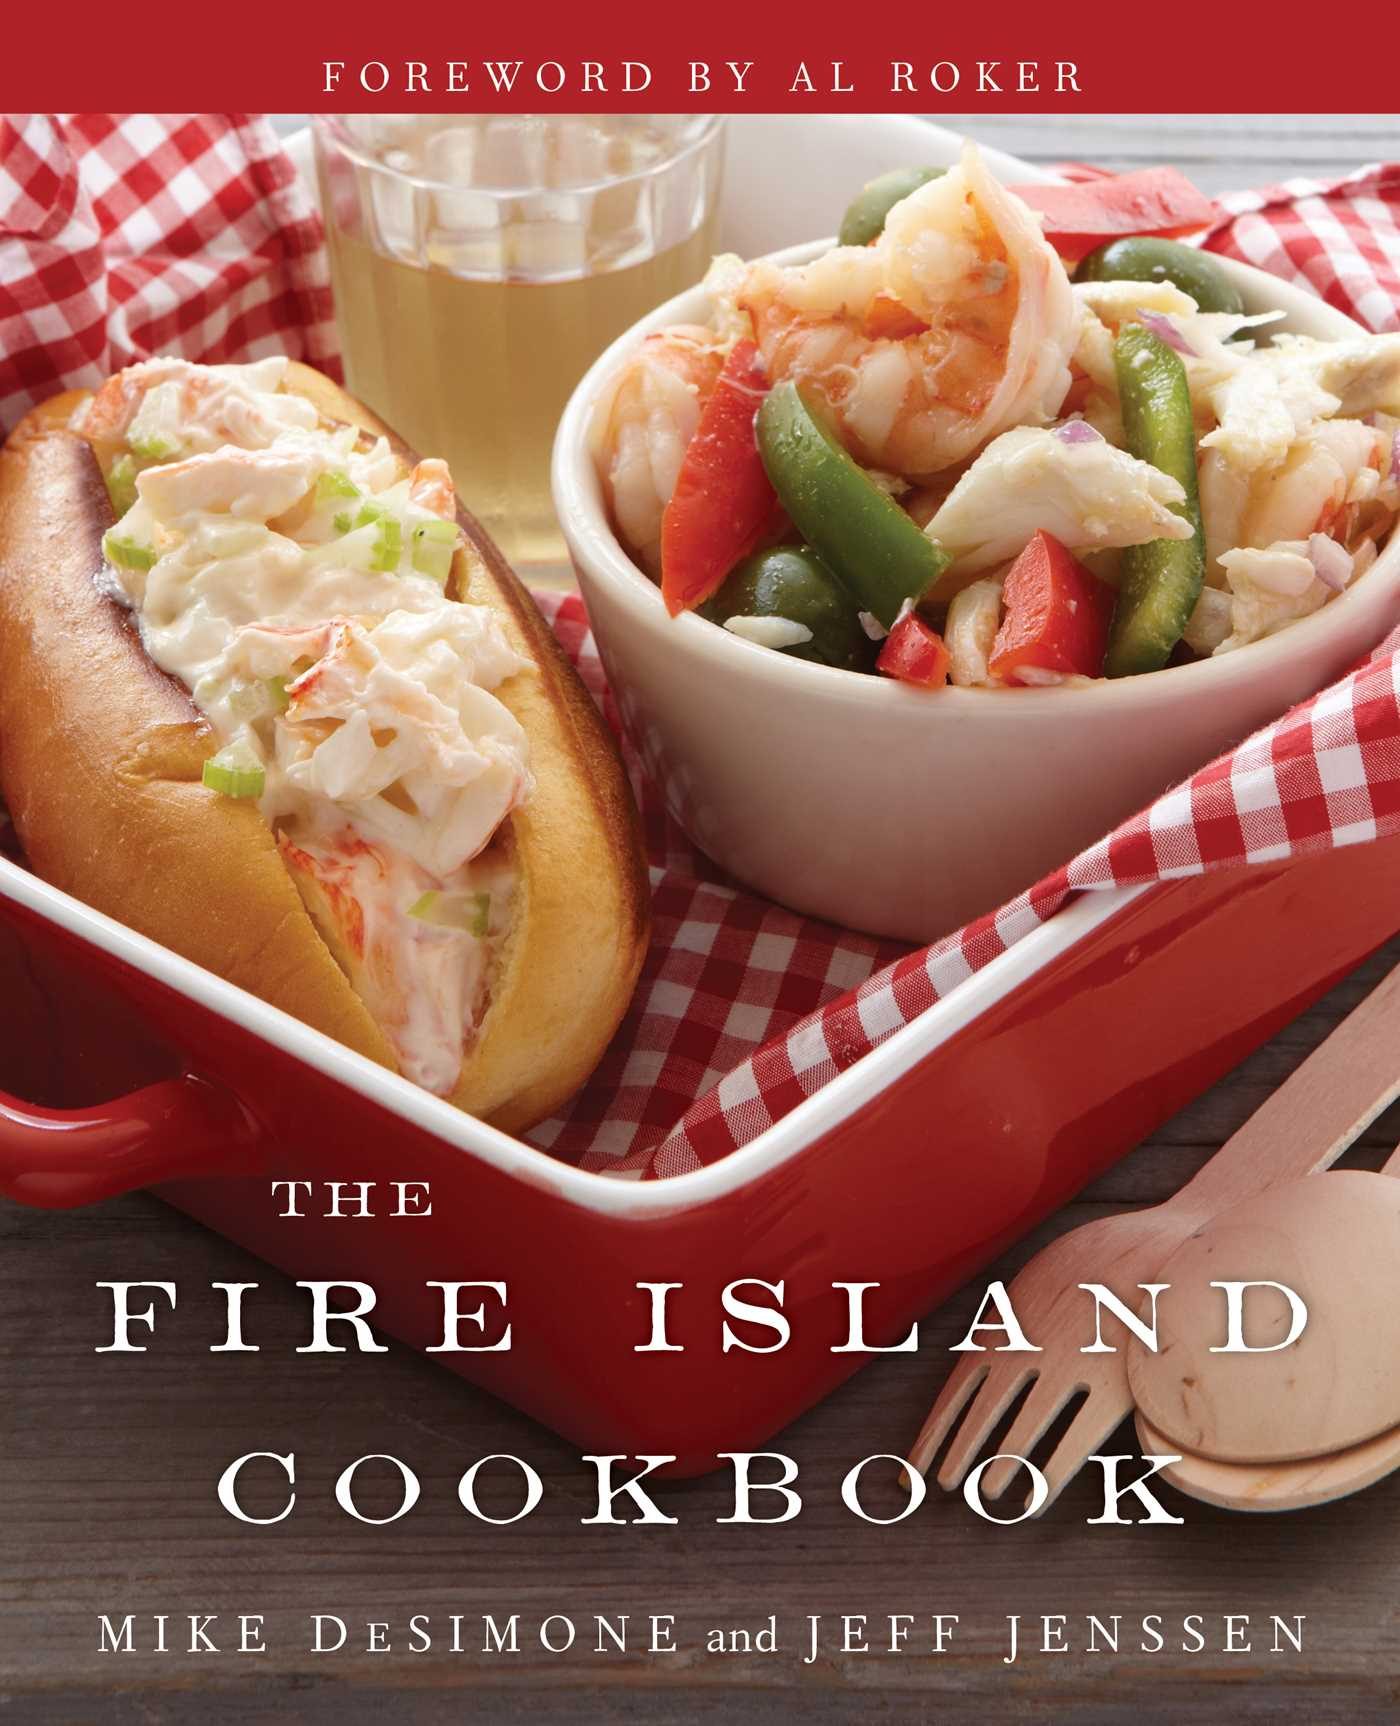 The fire island cookbook 9781451632941 hr